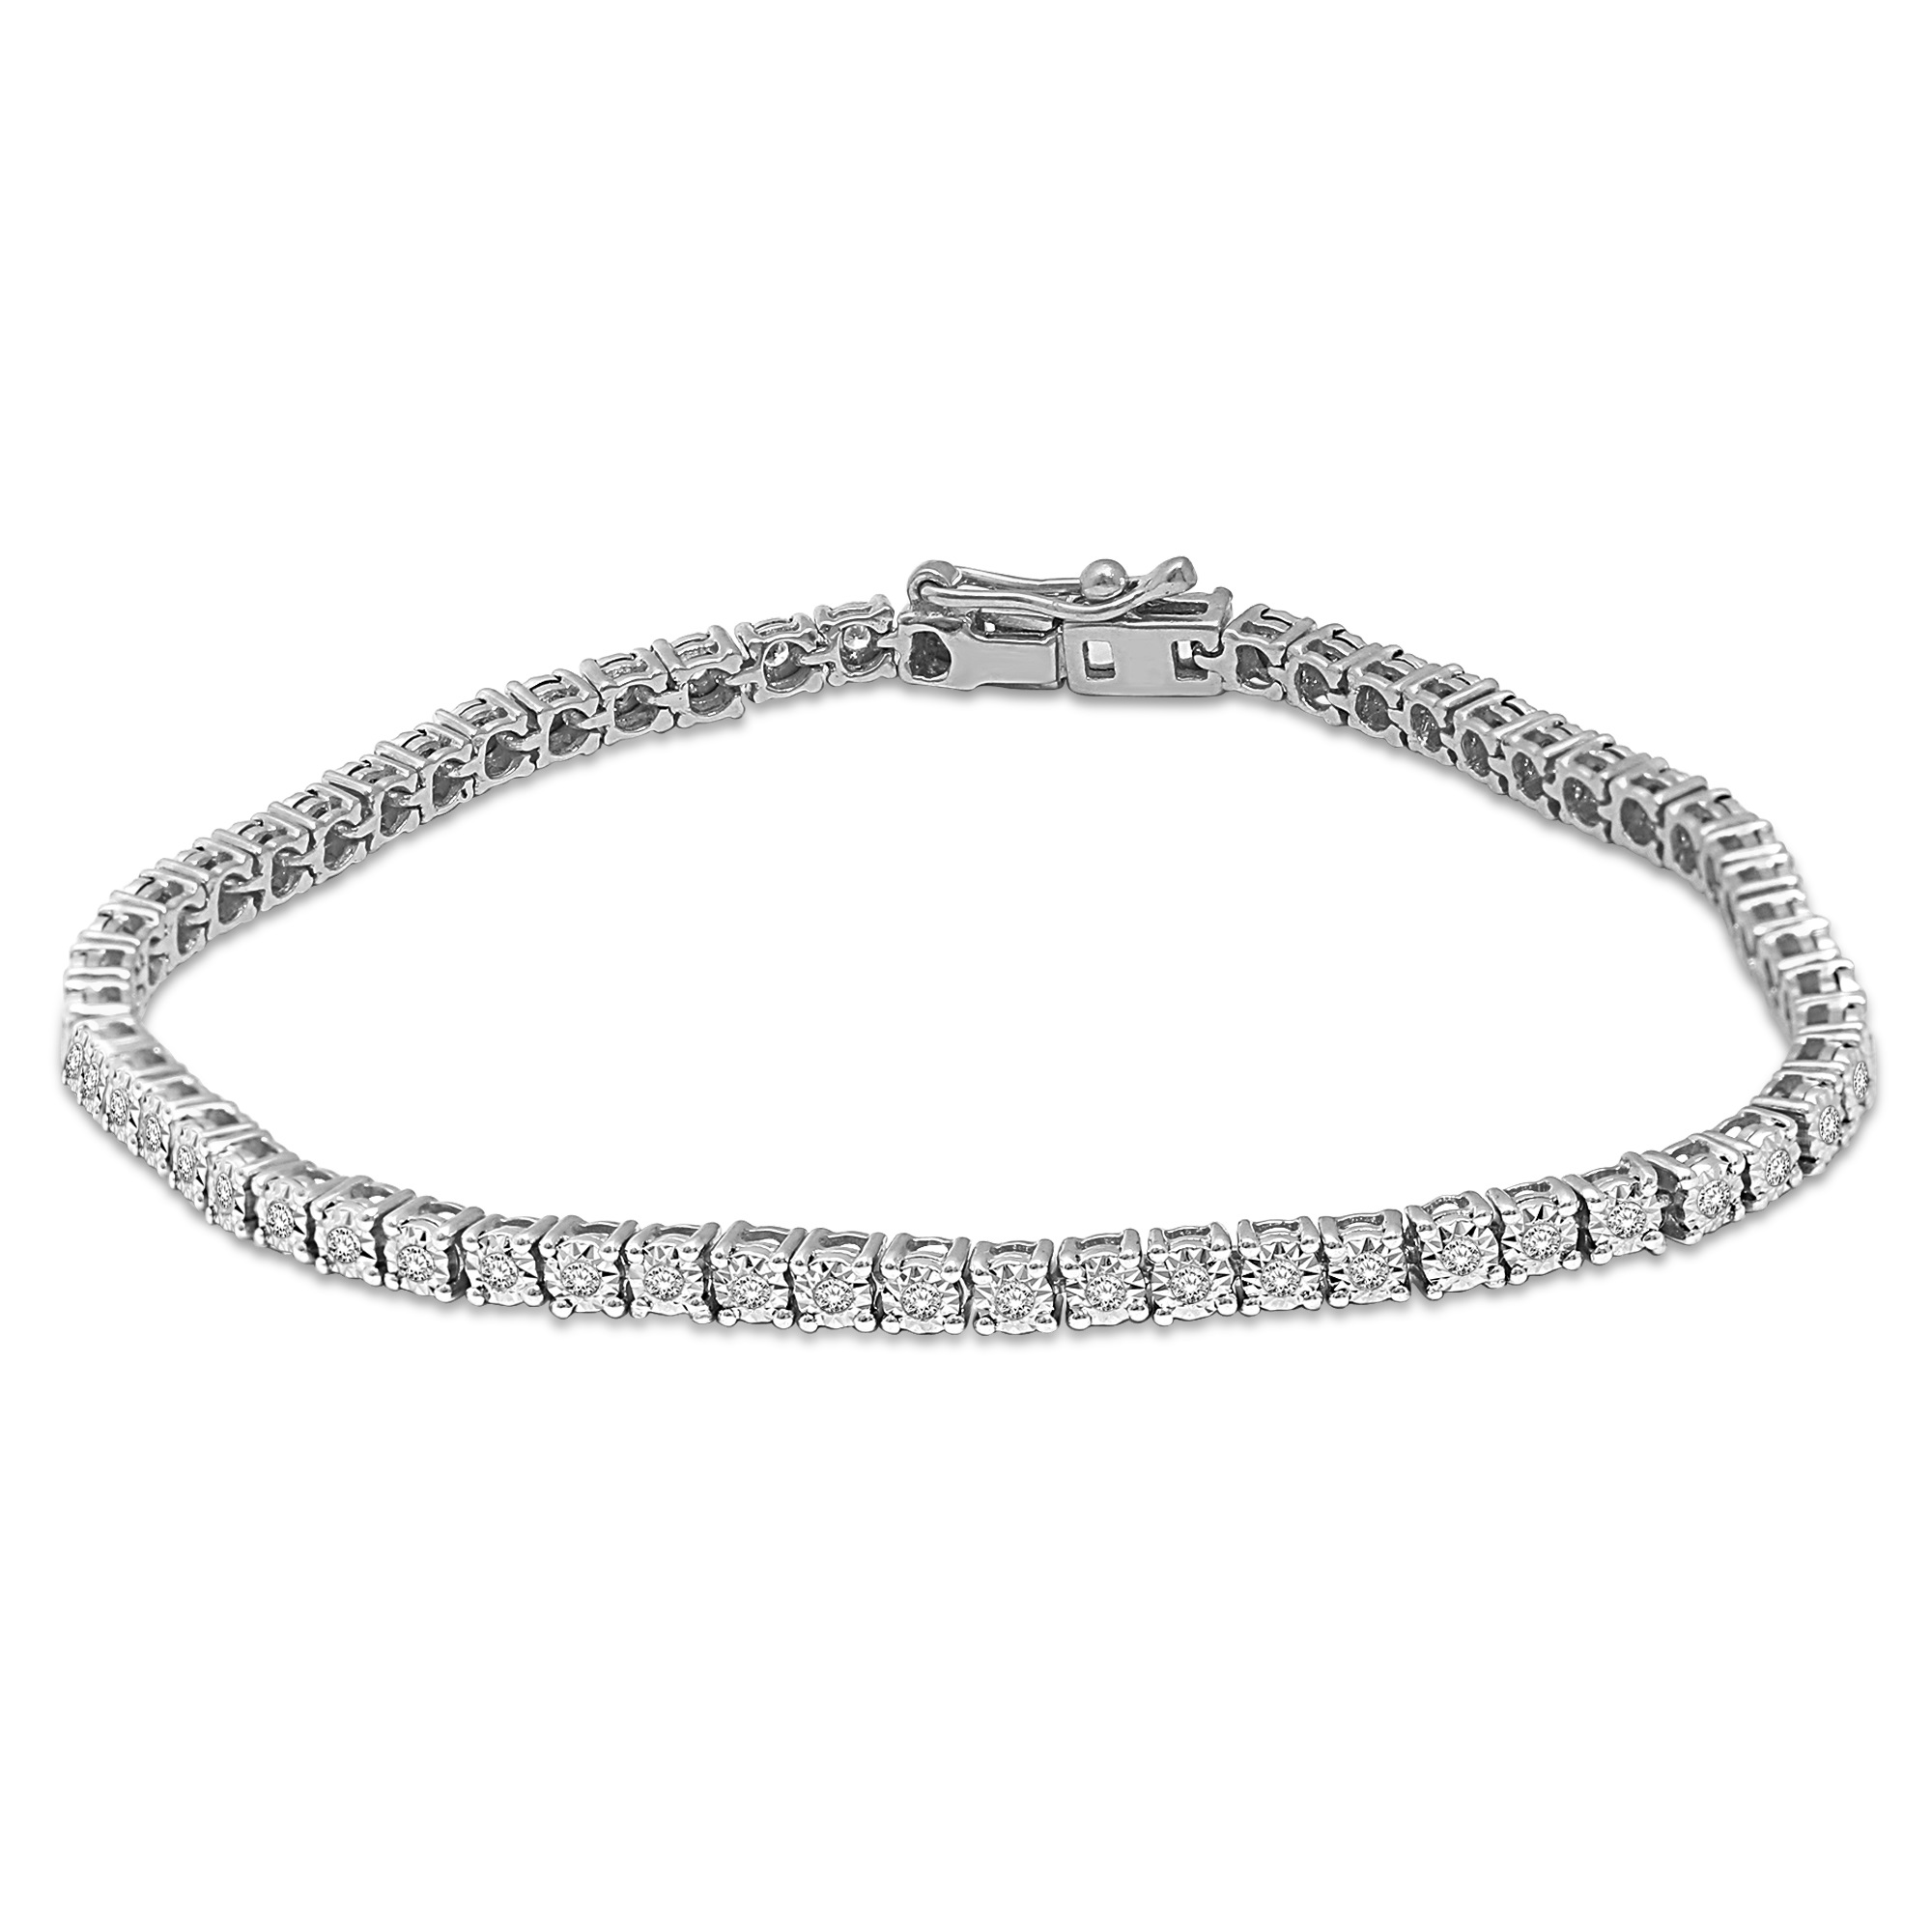 Bracelet tennis pour femme - Or blanc 14K & Diamants totalisant 3.00 Carat